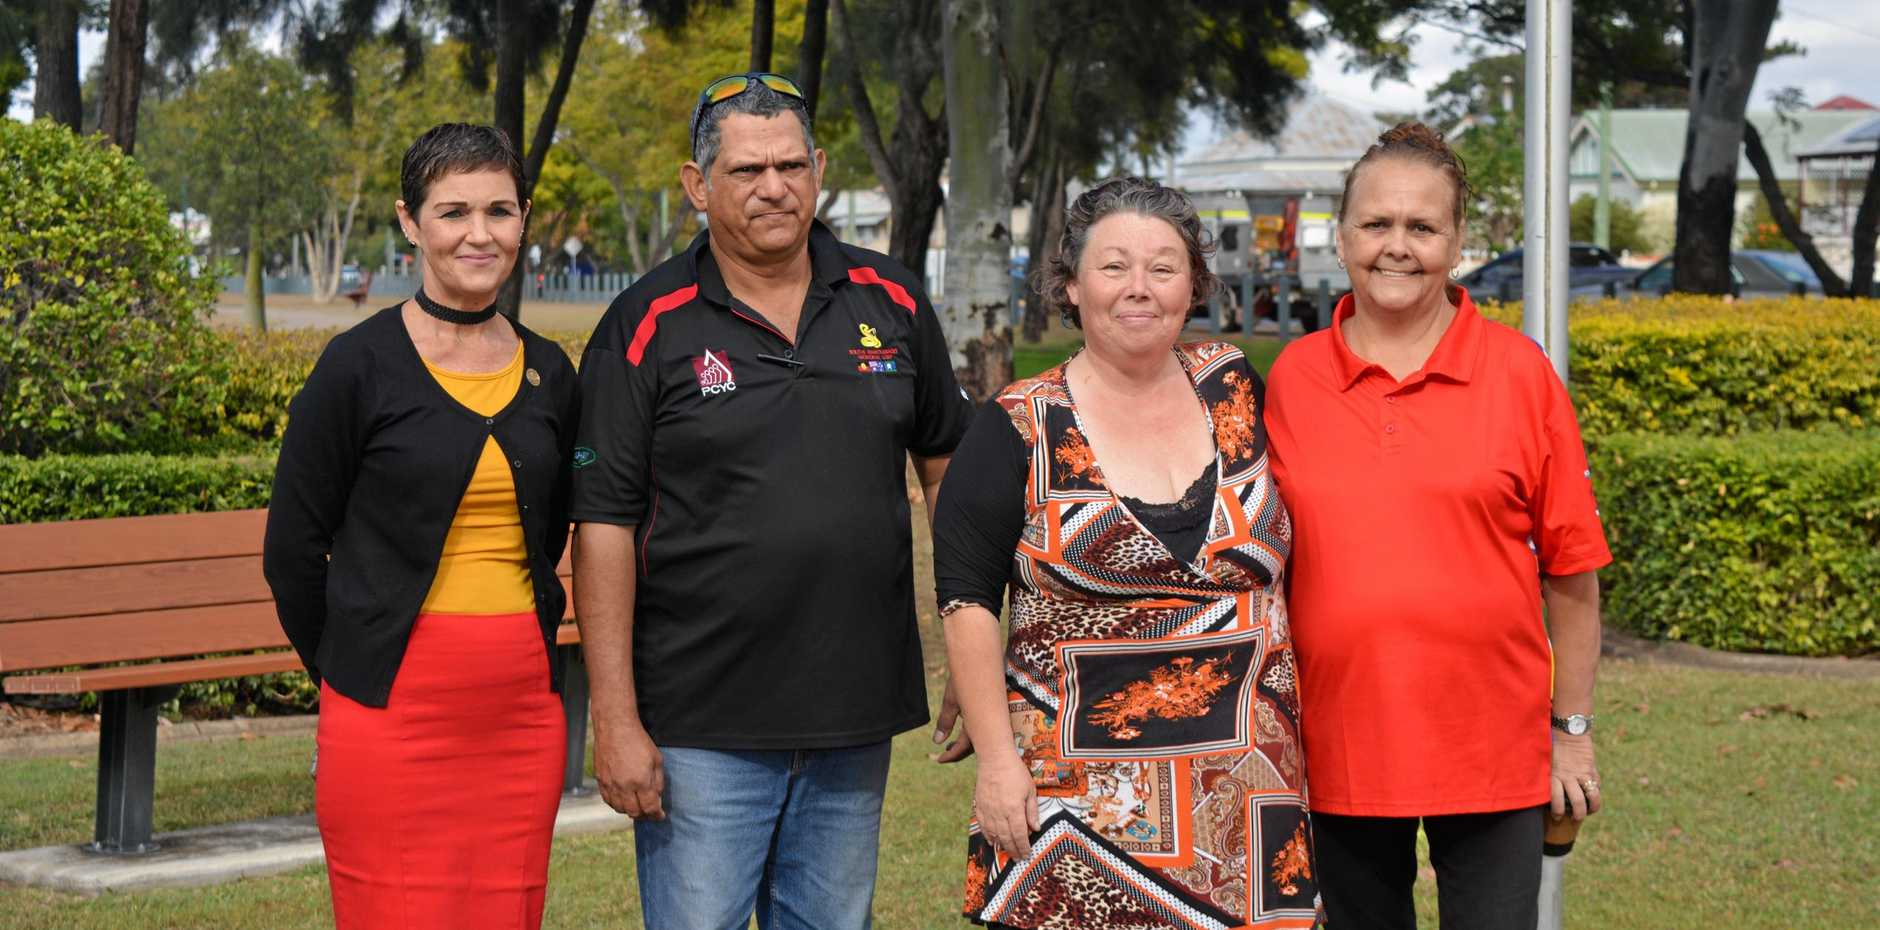 EXCITING: Spirit of the Valley president Idell Wadley (third from left) said the grant from Lockyer Valley Regional Council was just what the group needed.